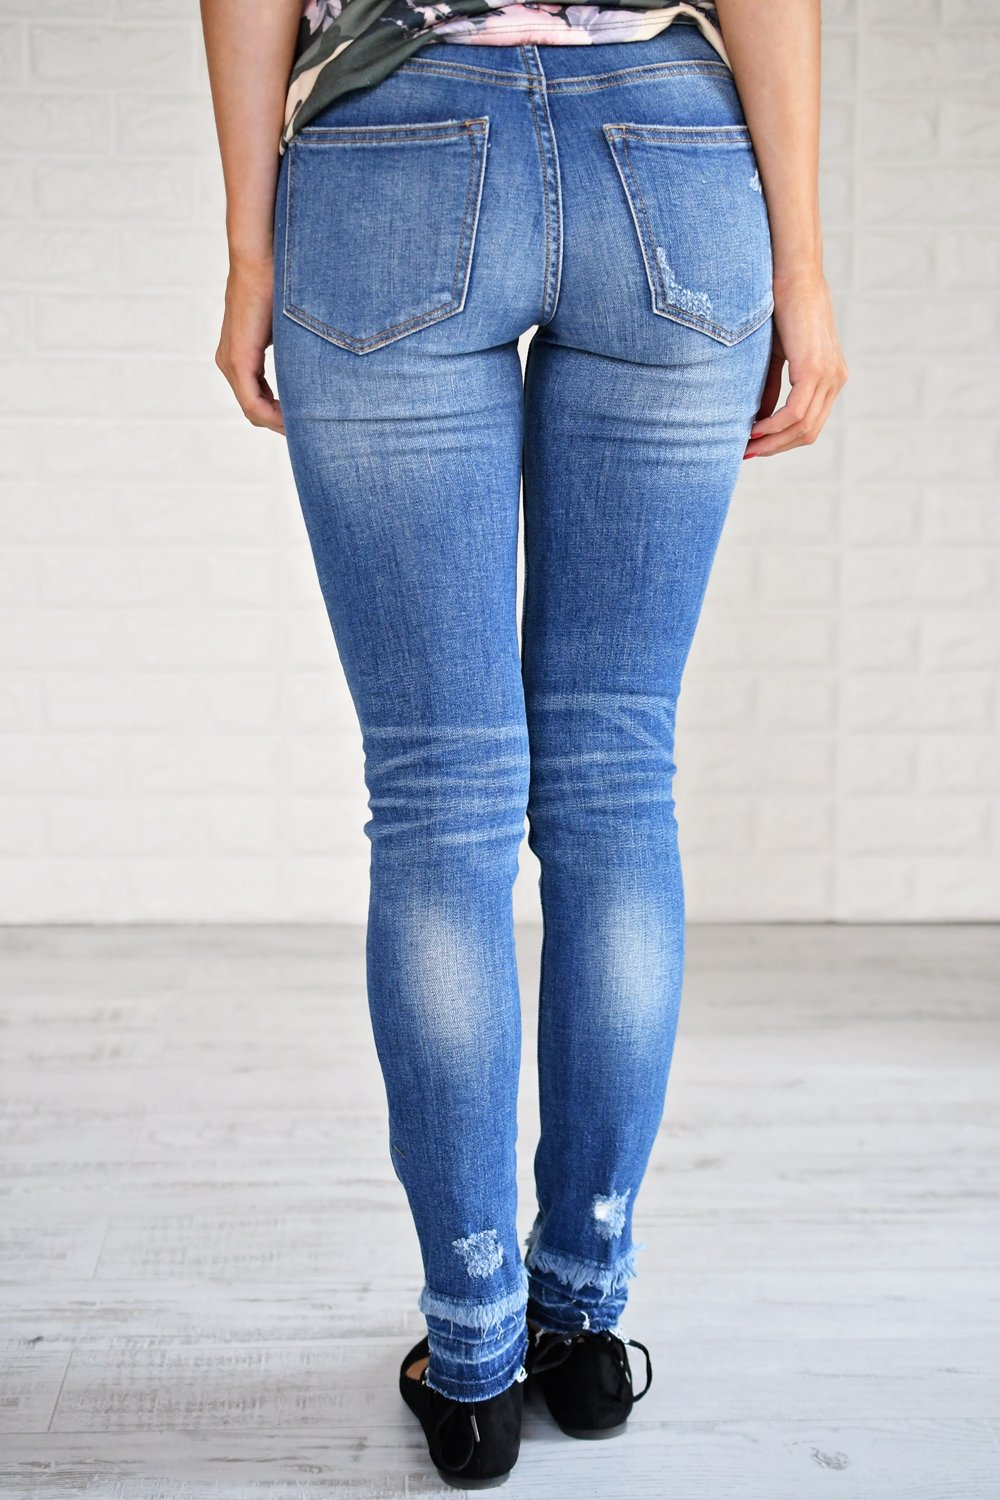 Sneak Peek ~ Andrea Wash Jeans